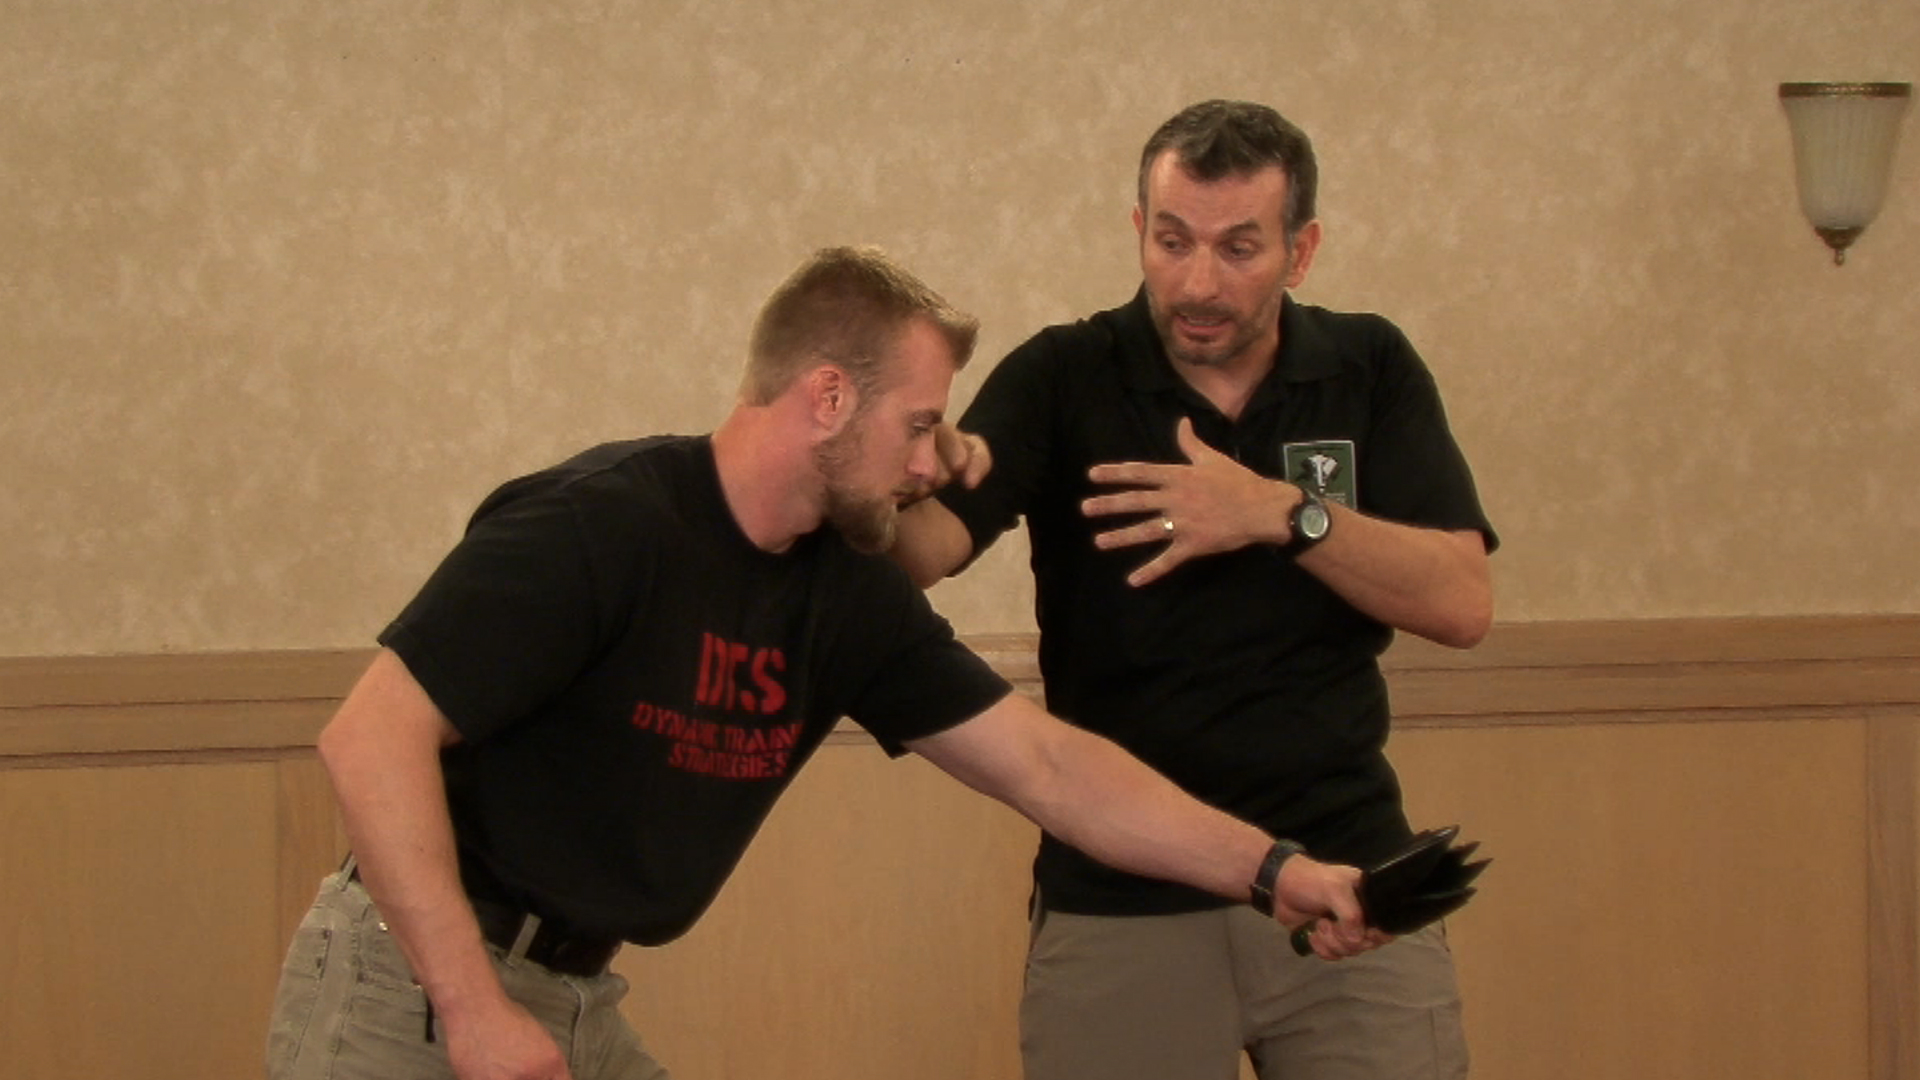 Unarmed Self-Defense Techniques Against Multiple Attackers